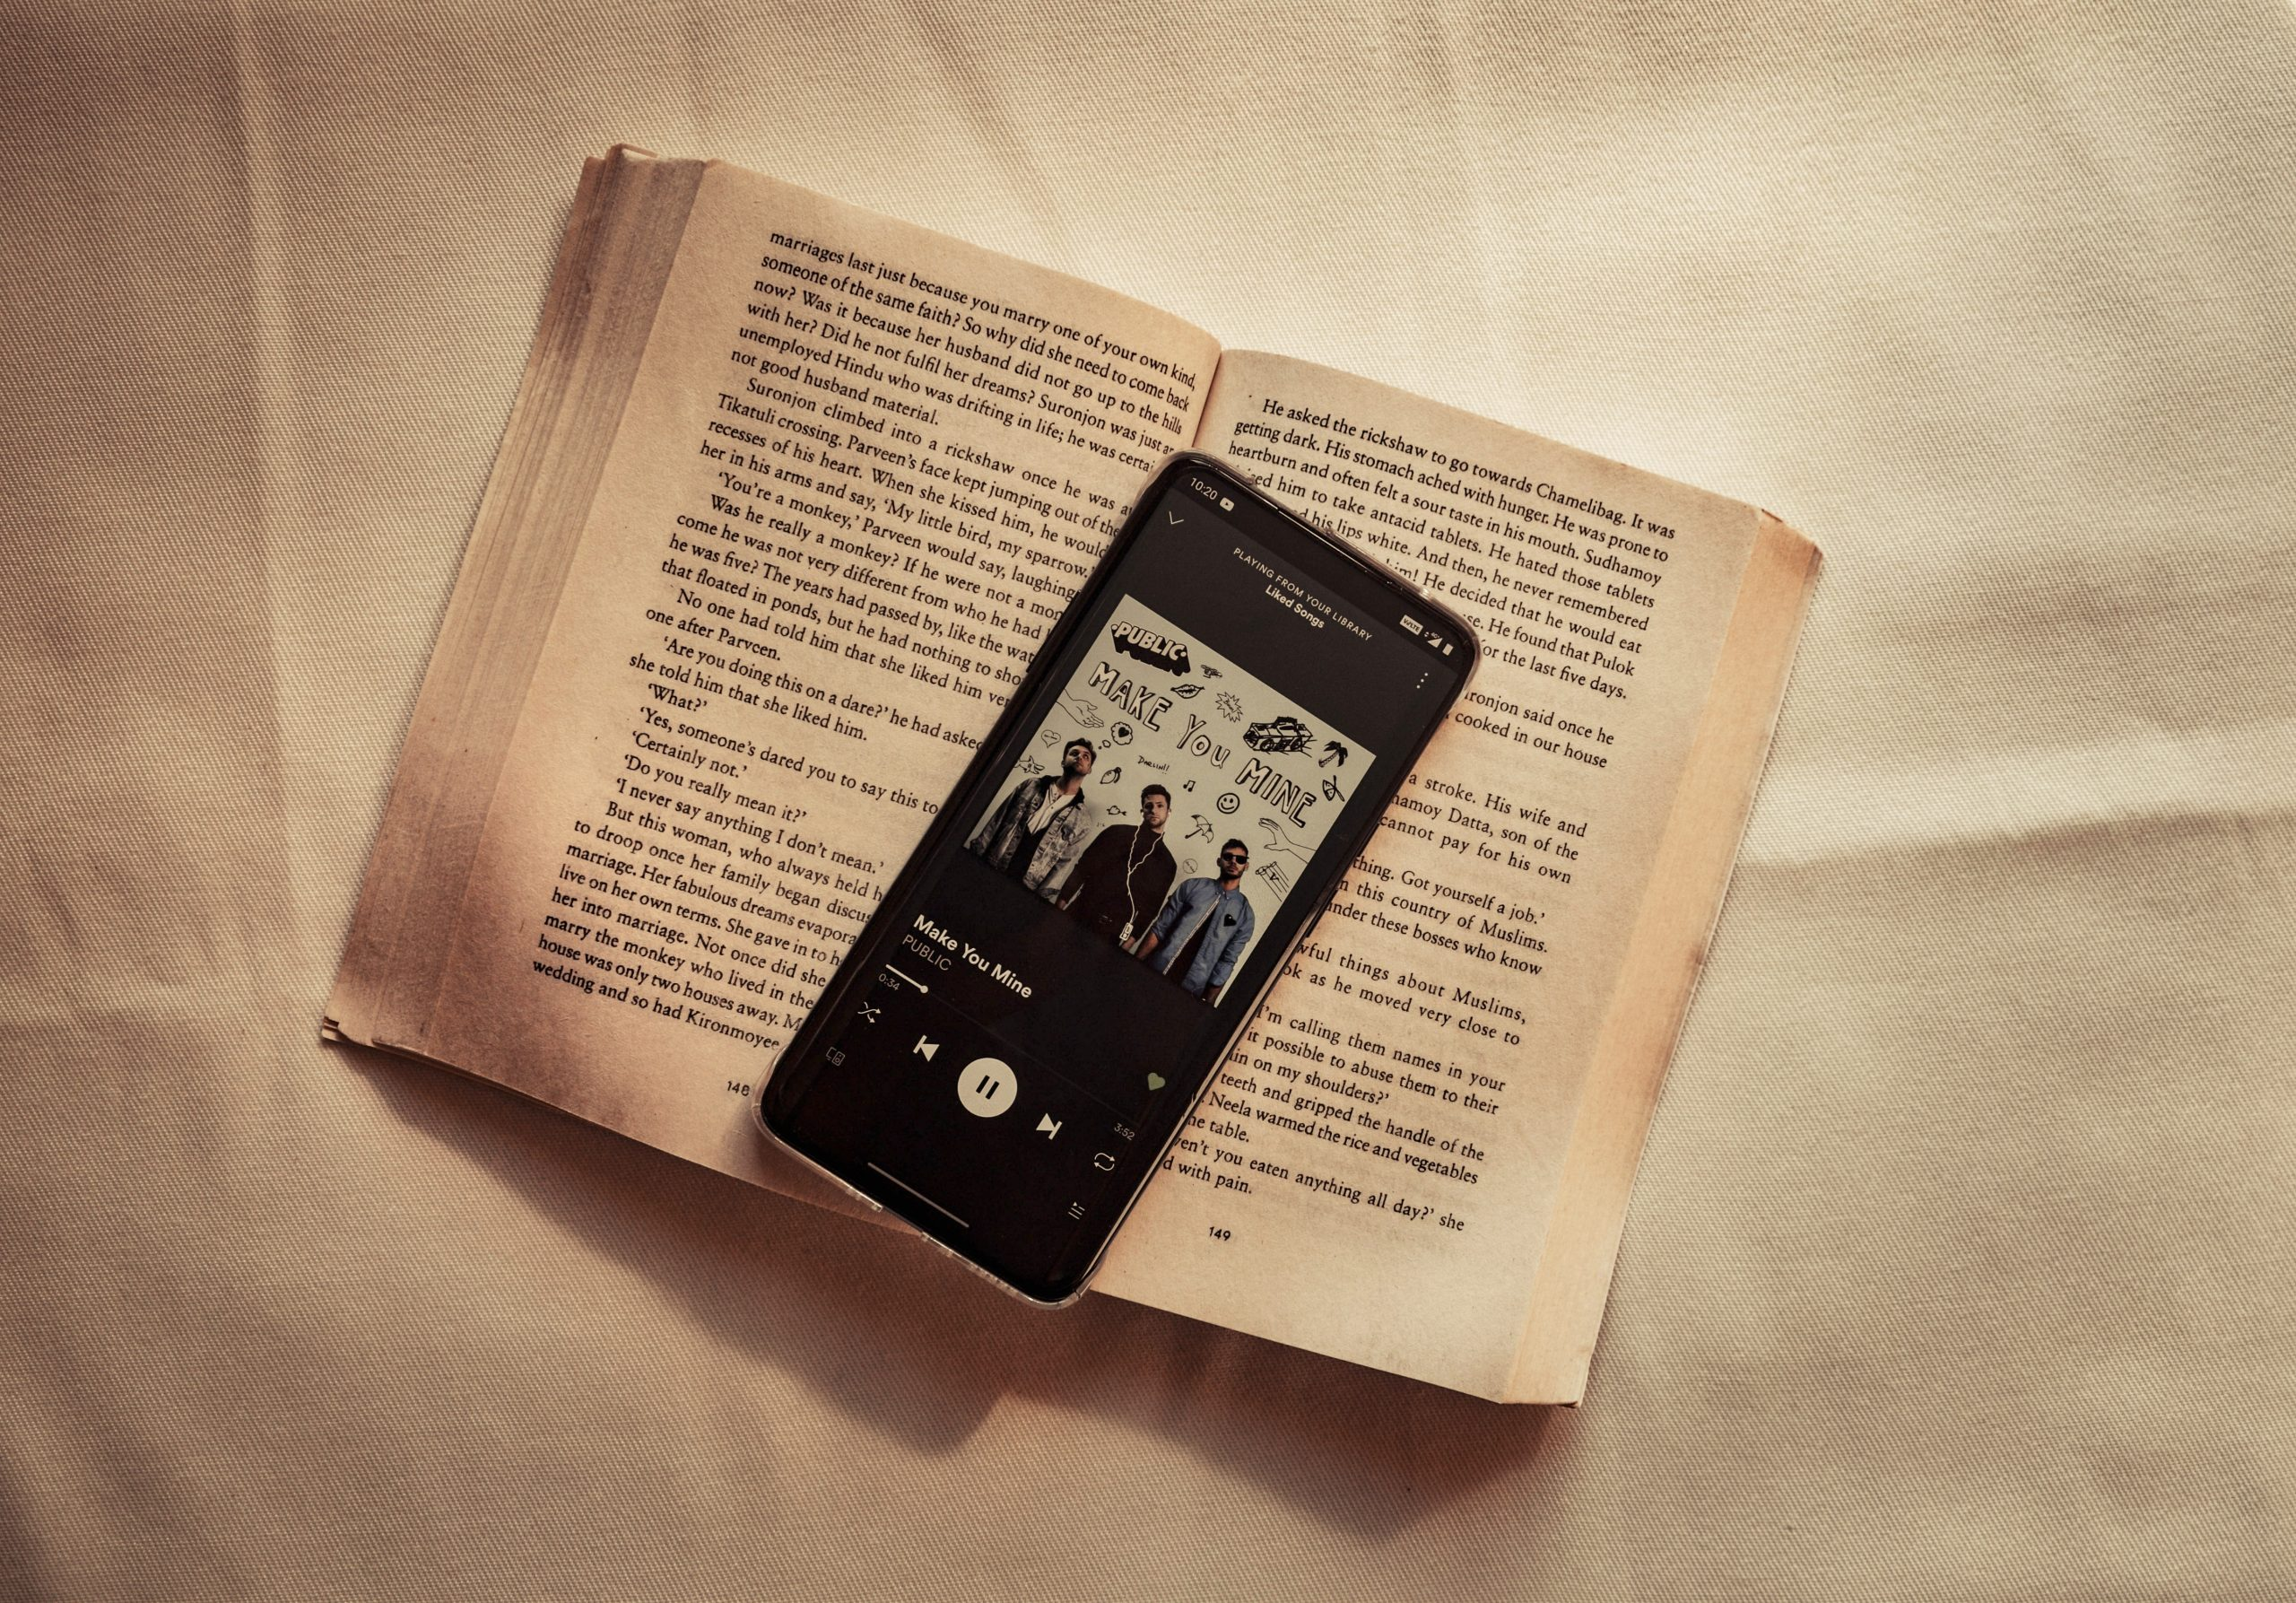 book and music on mobile phone